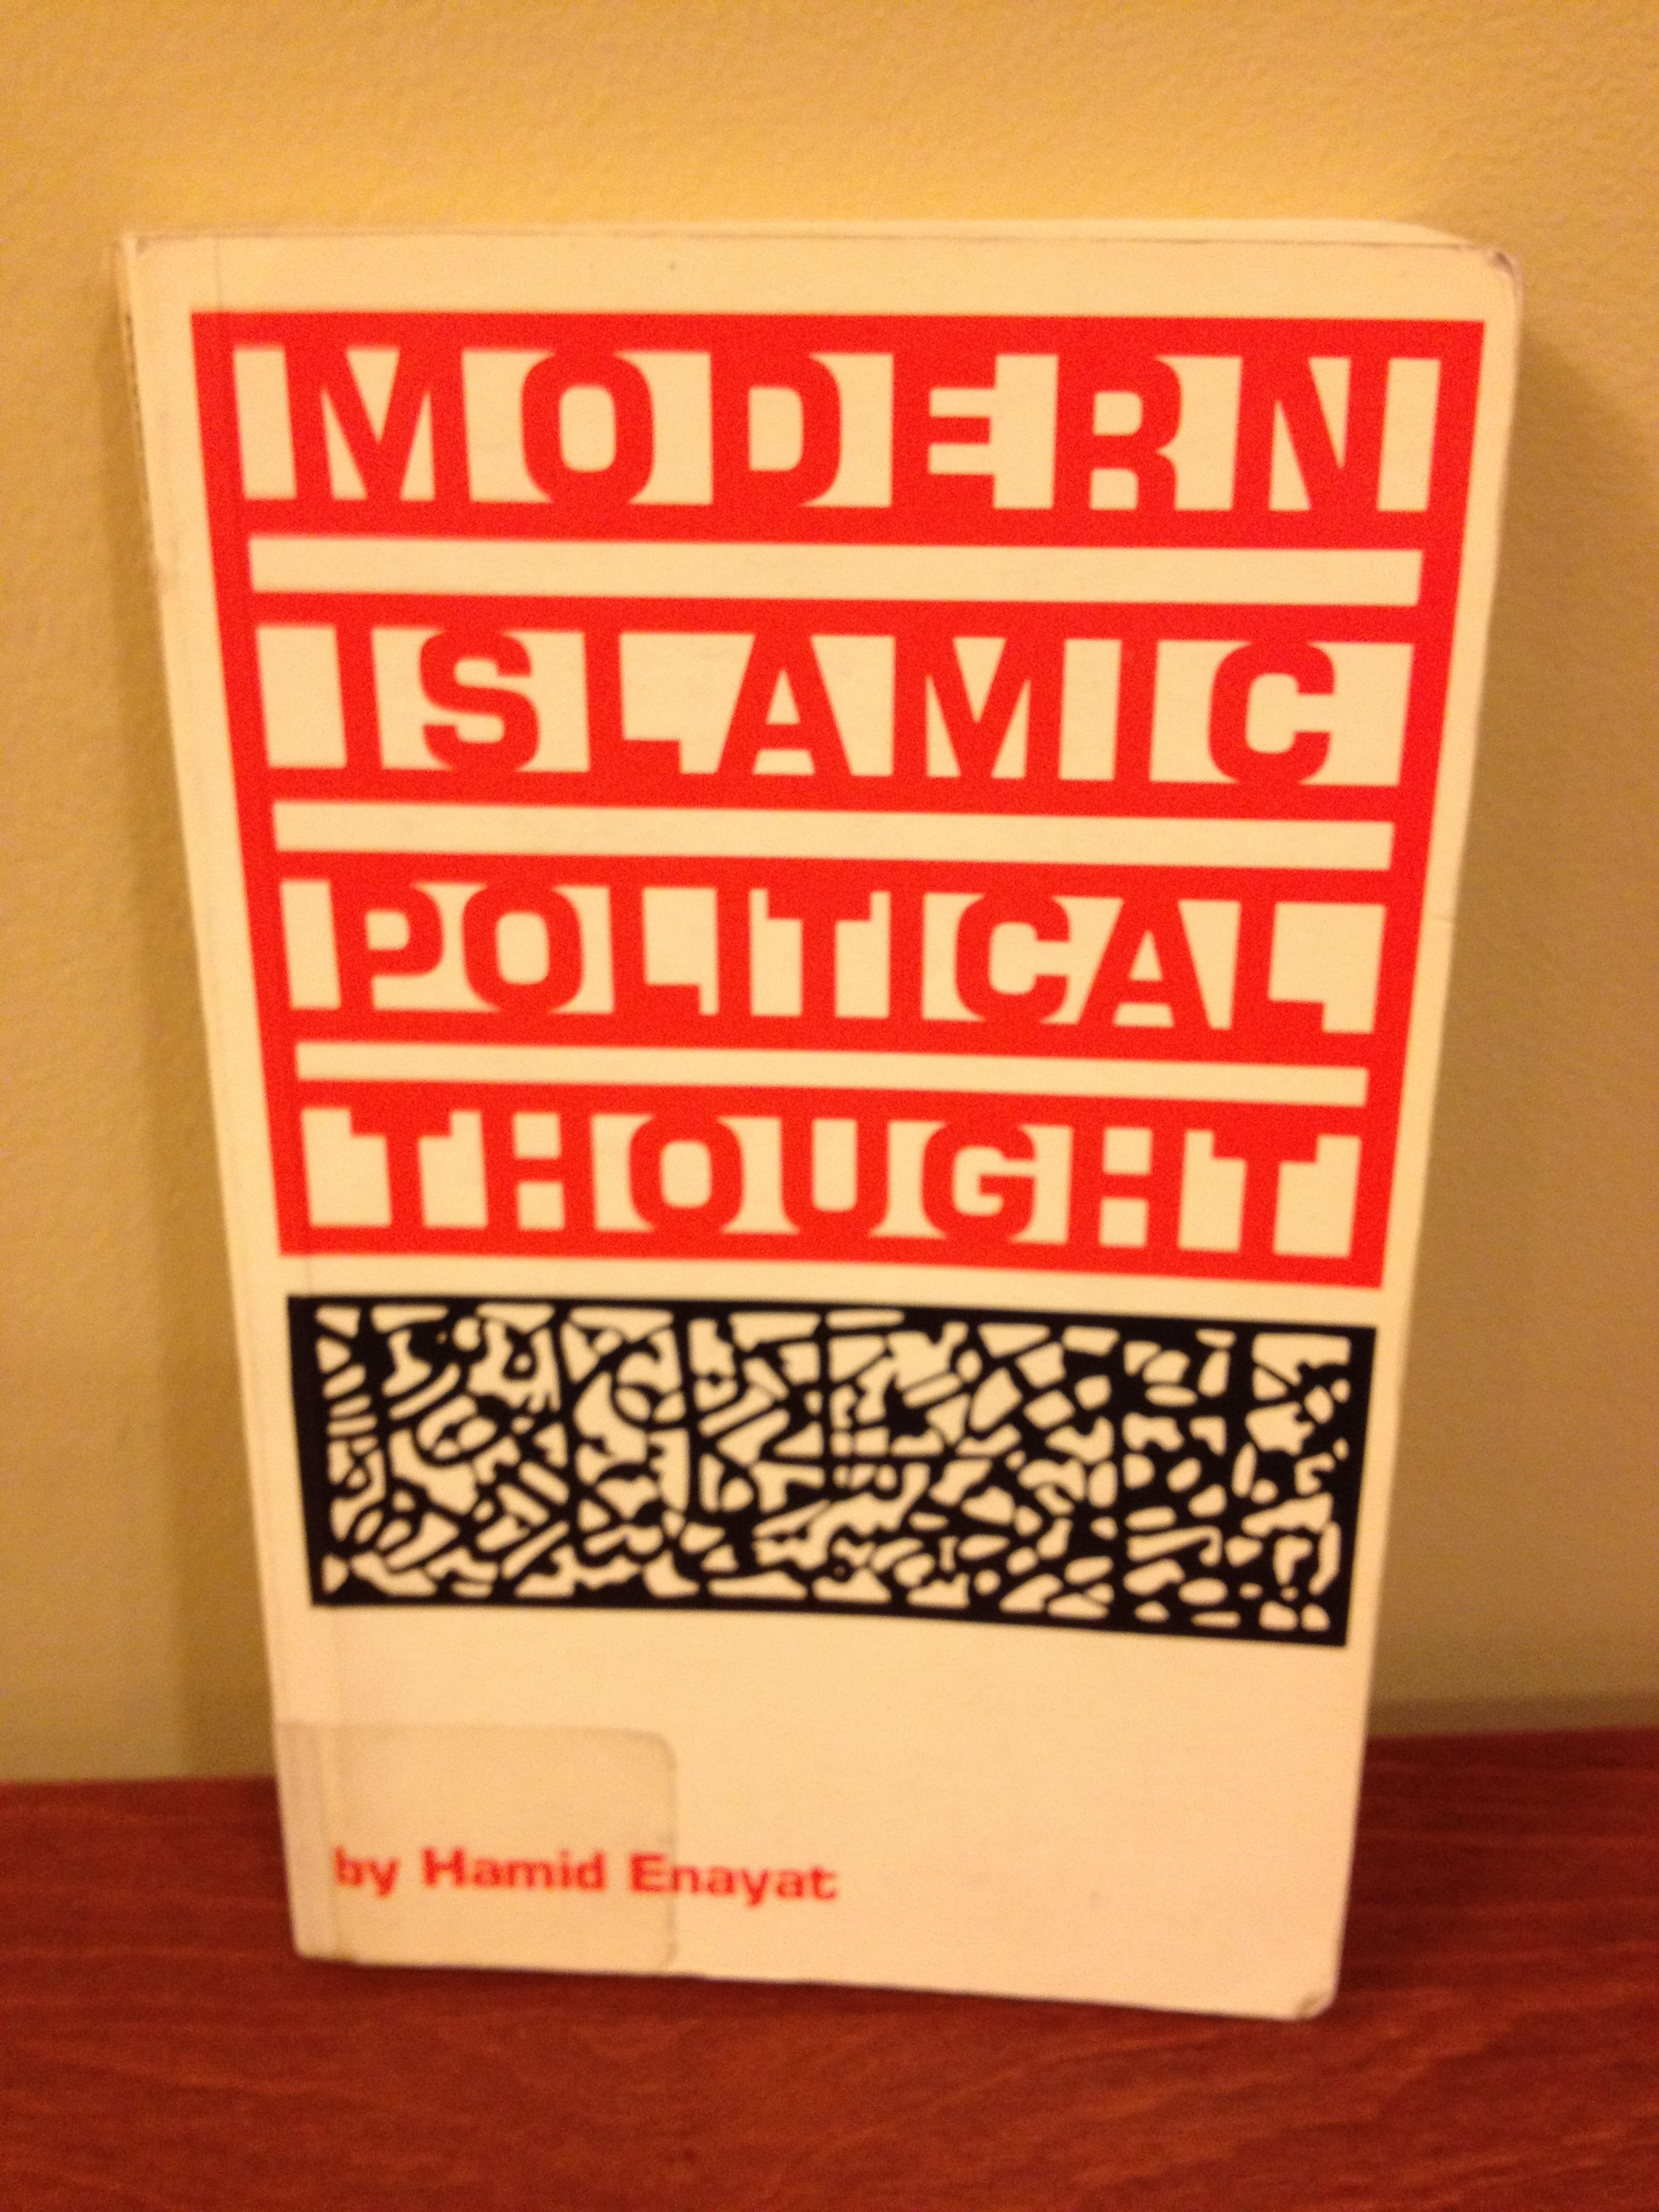 political thinkers Friendship and politics essays in political thought edited by john von heyking and richard avramenko throughout the history of western political philosophy, the idea of friendship has occupied a central place in the conversation.